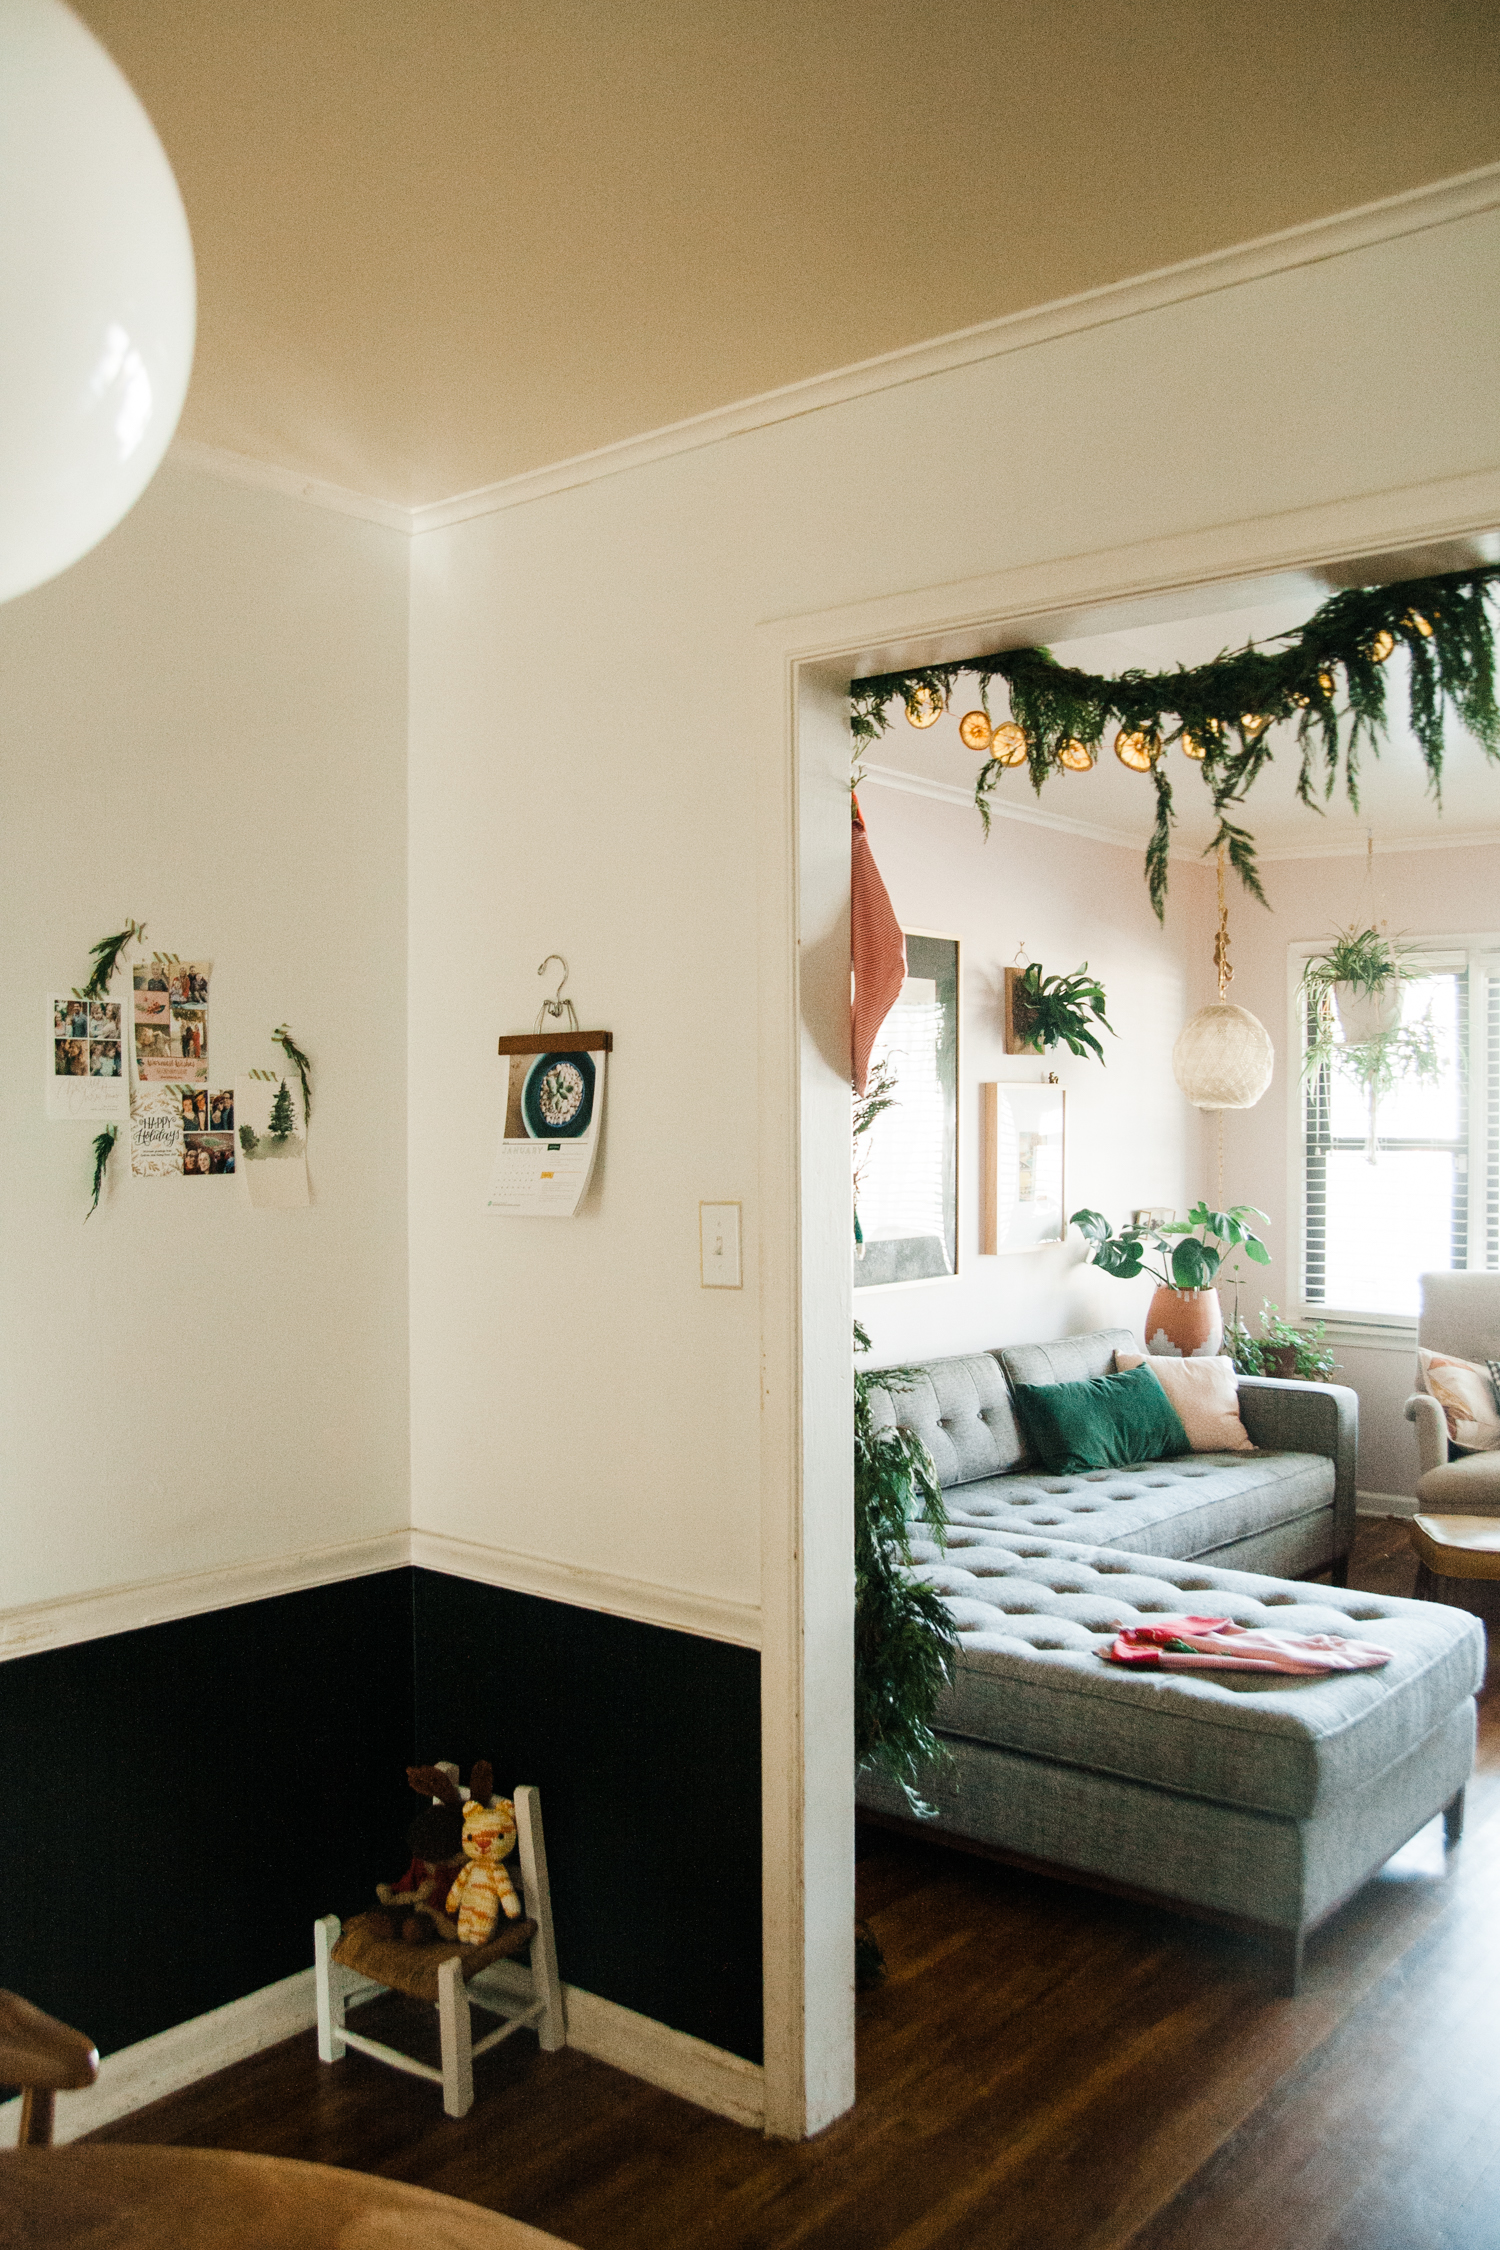 daly holiday home tour-30.jpg